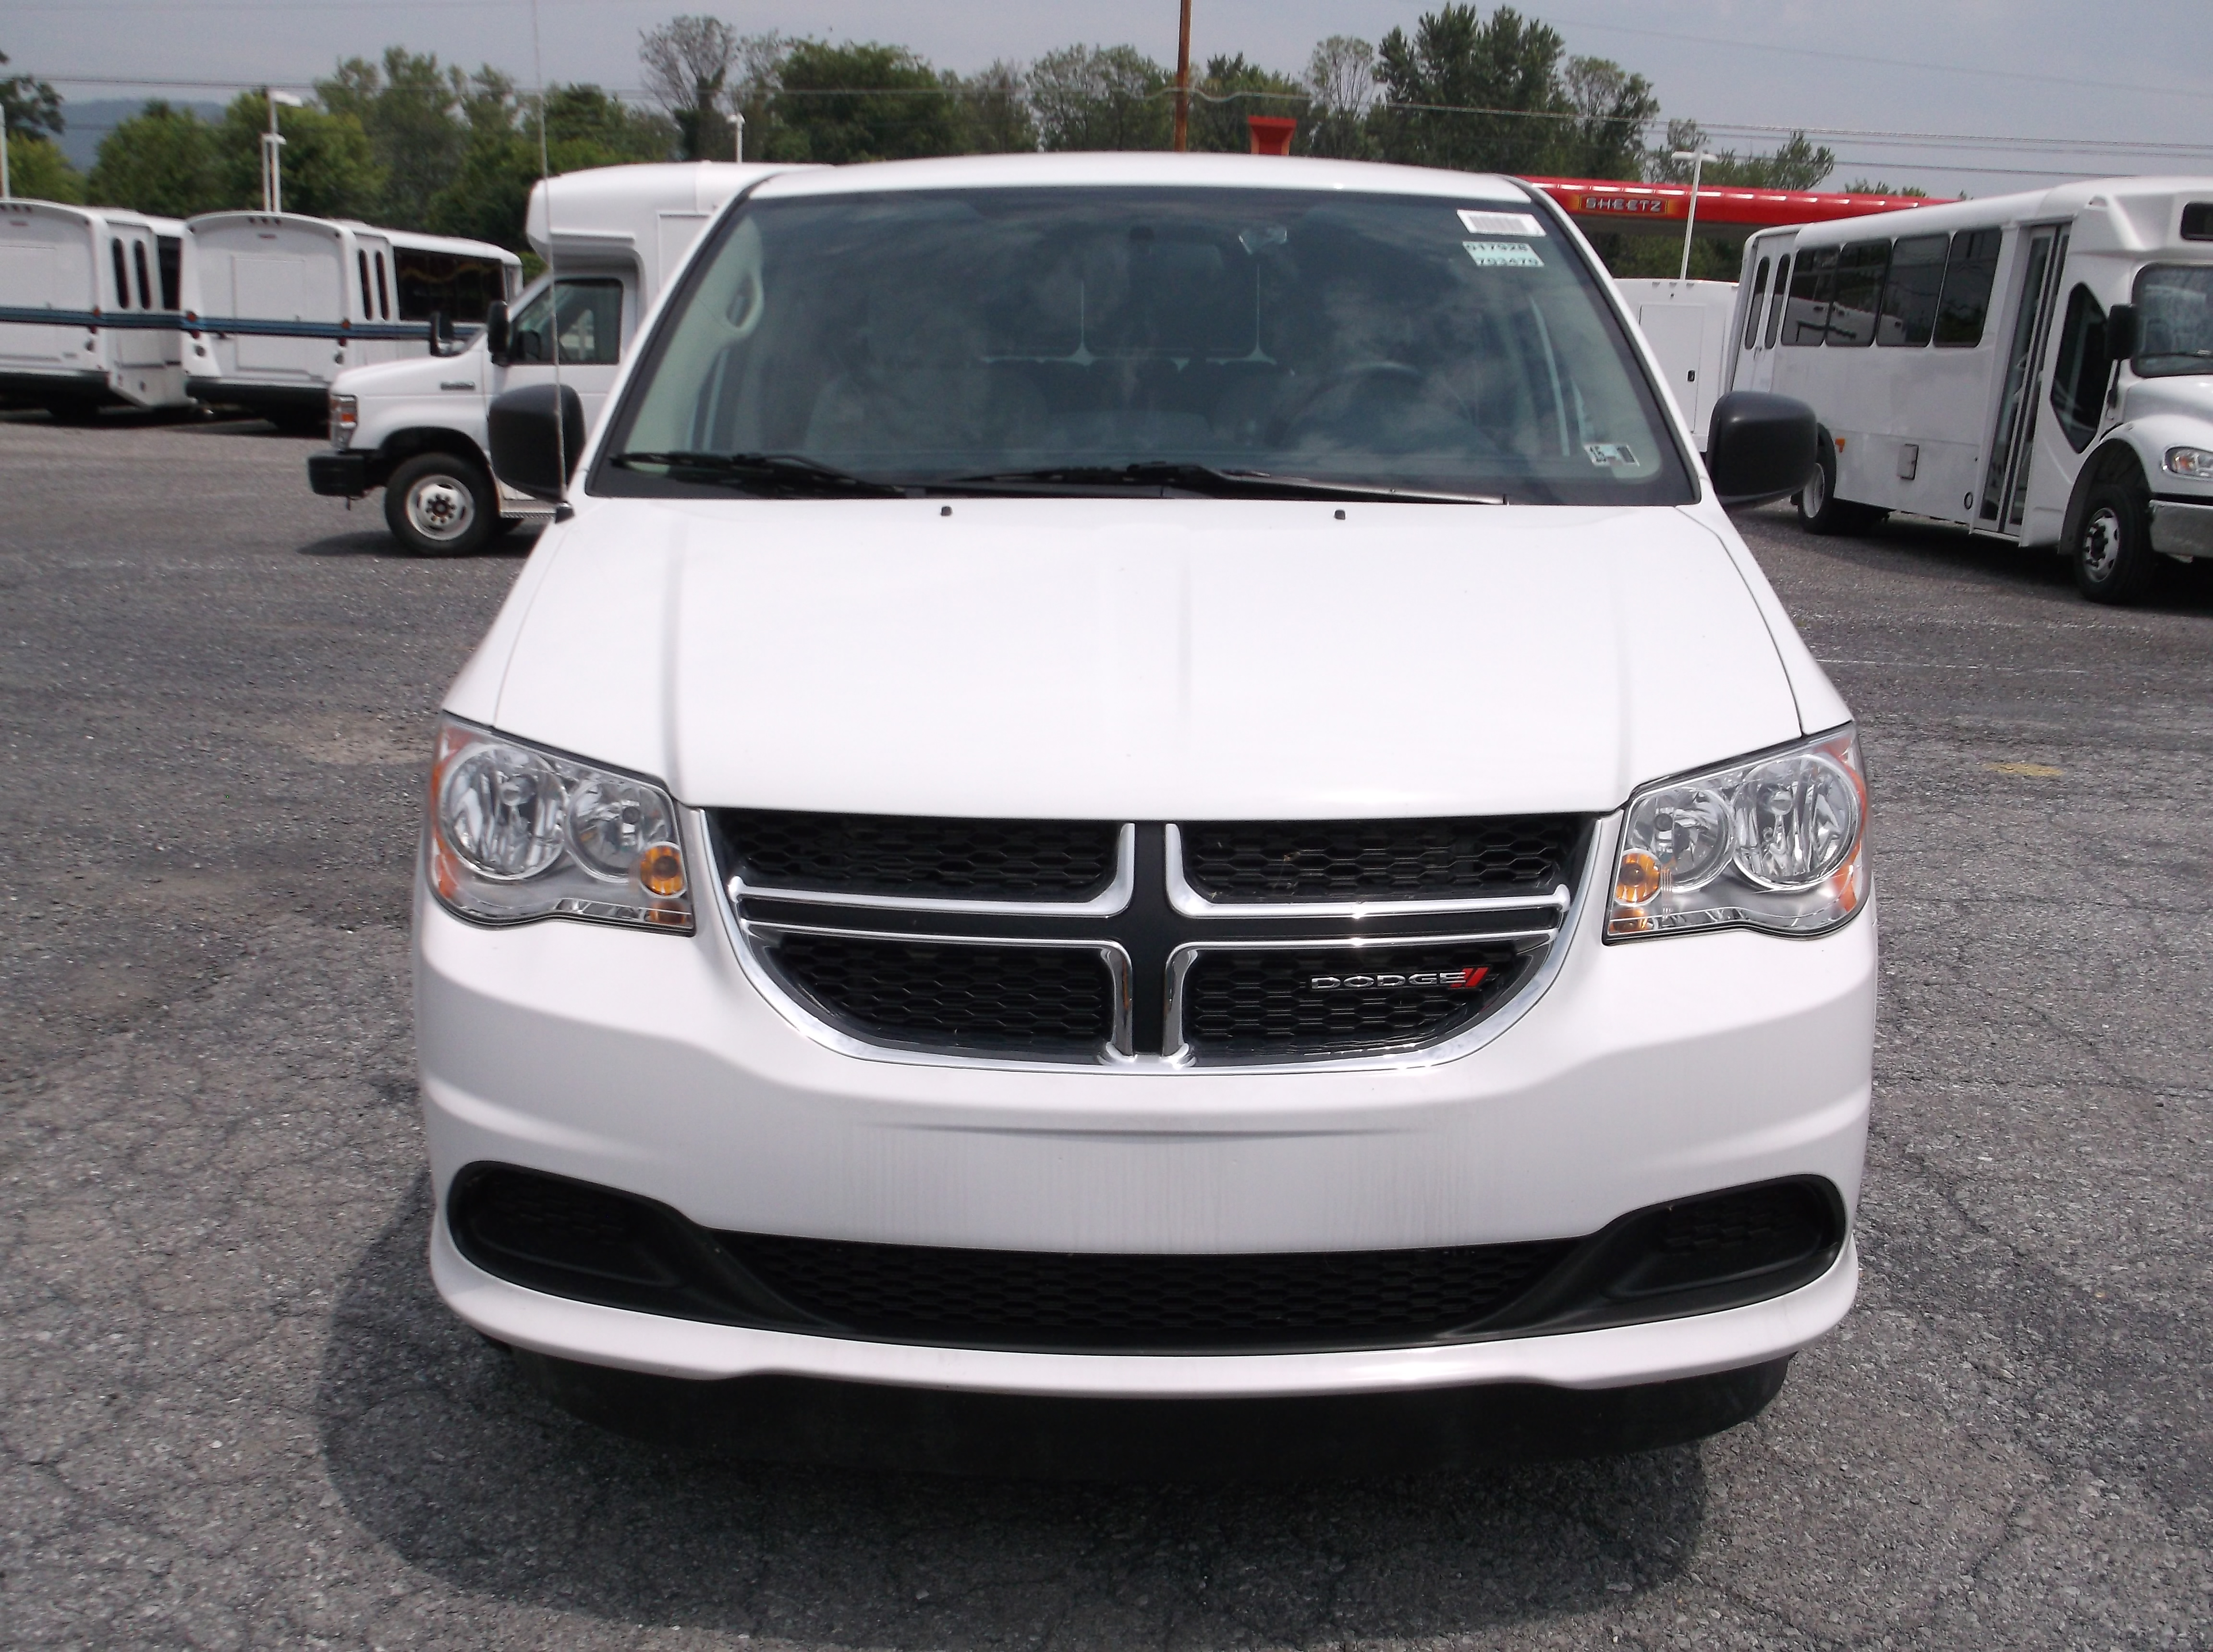 2015 dodge grand caravan 5 1 w c rohrer bus rohrer bus. Black Bedroom Furniture Sets. Home Design Ideas